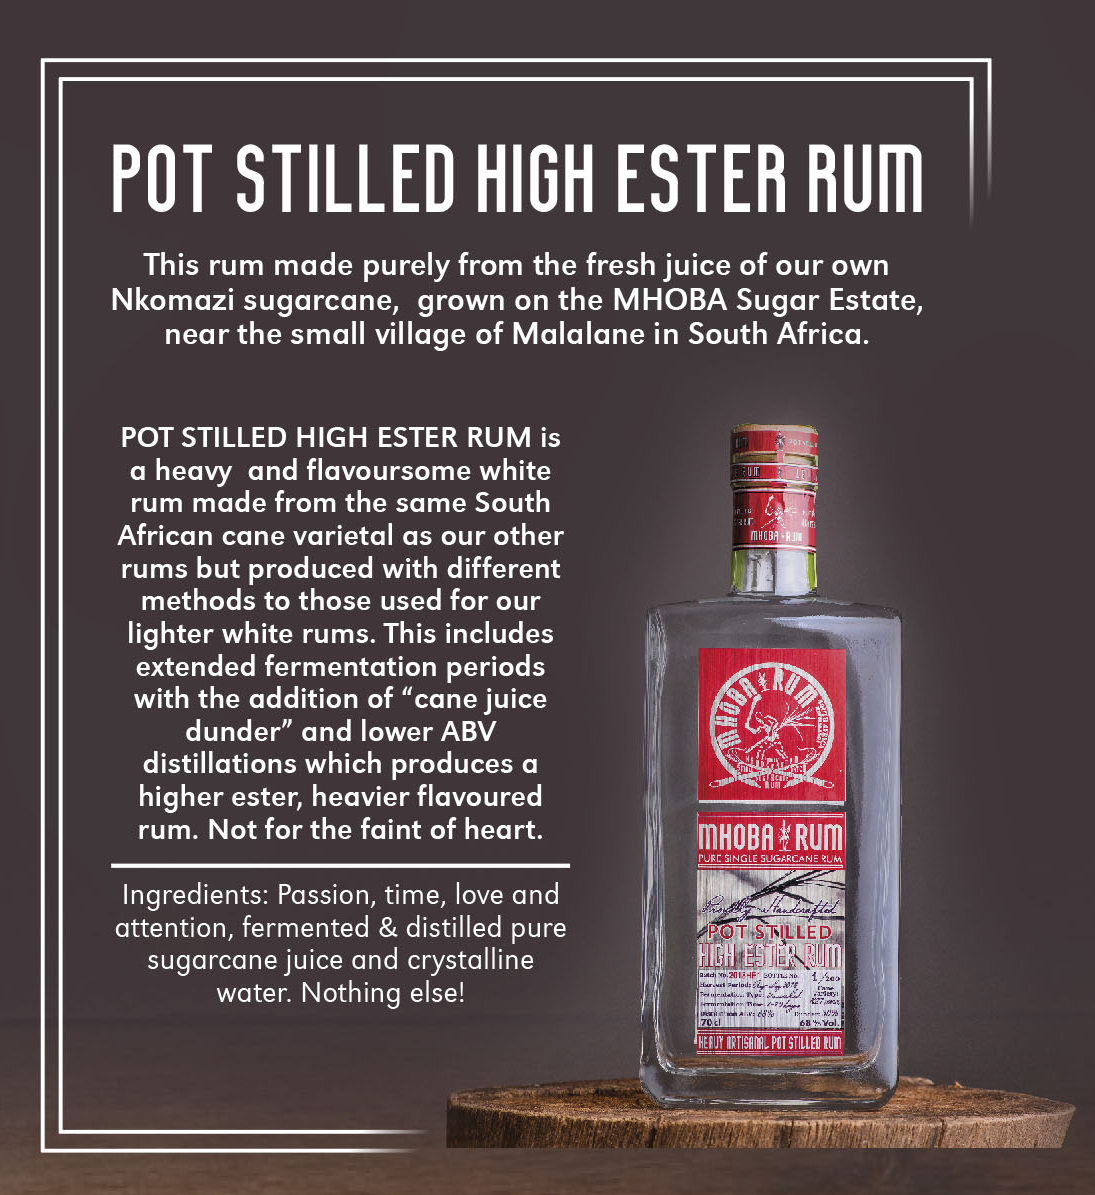 Pot Stilled High Ester Rum.jpg